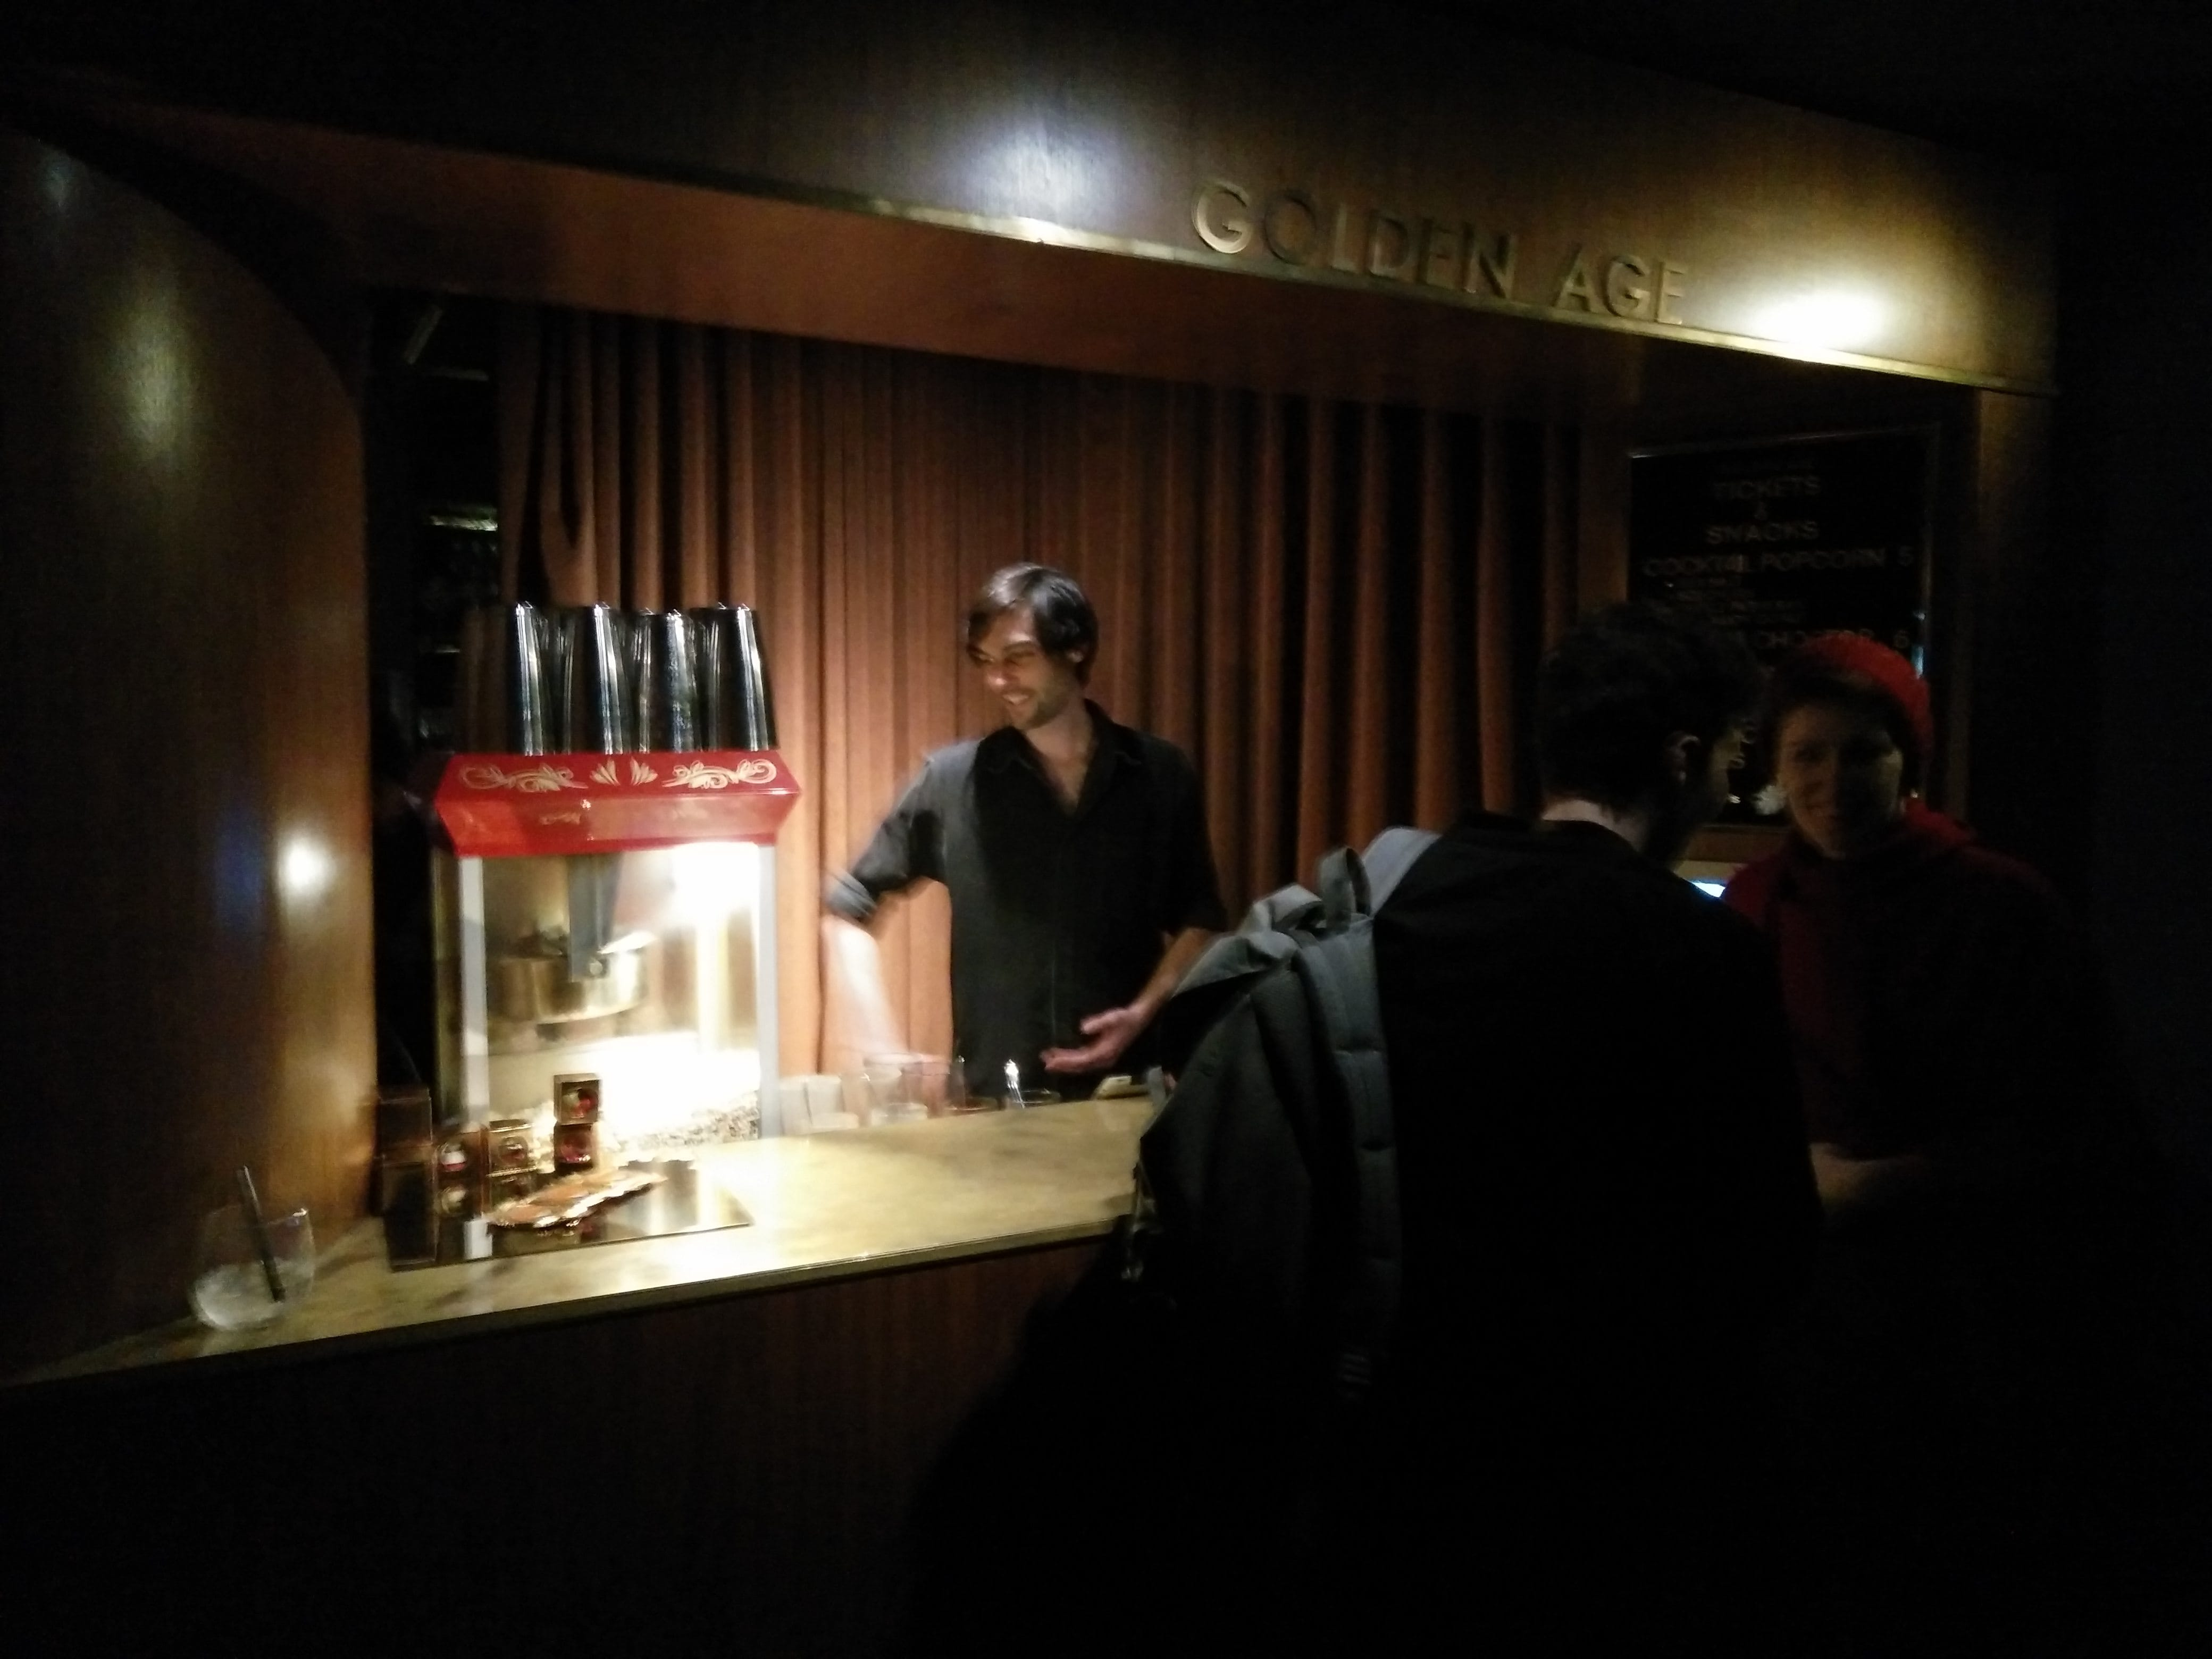 The Popcorn Bartender at the Golden Age Cinema in Sydney, Australia